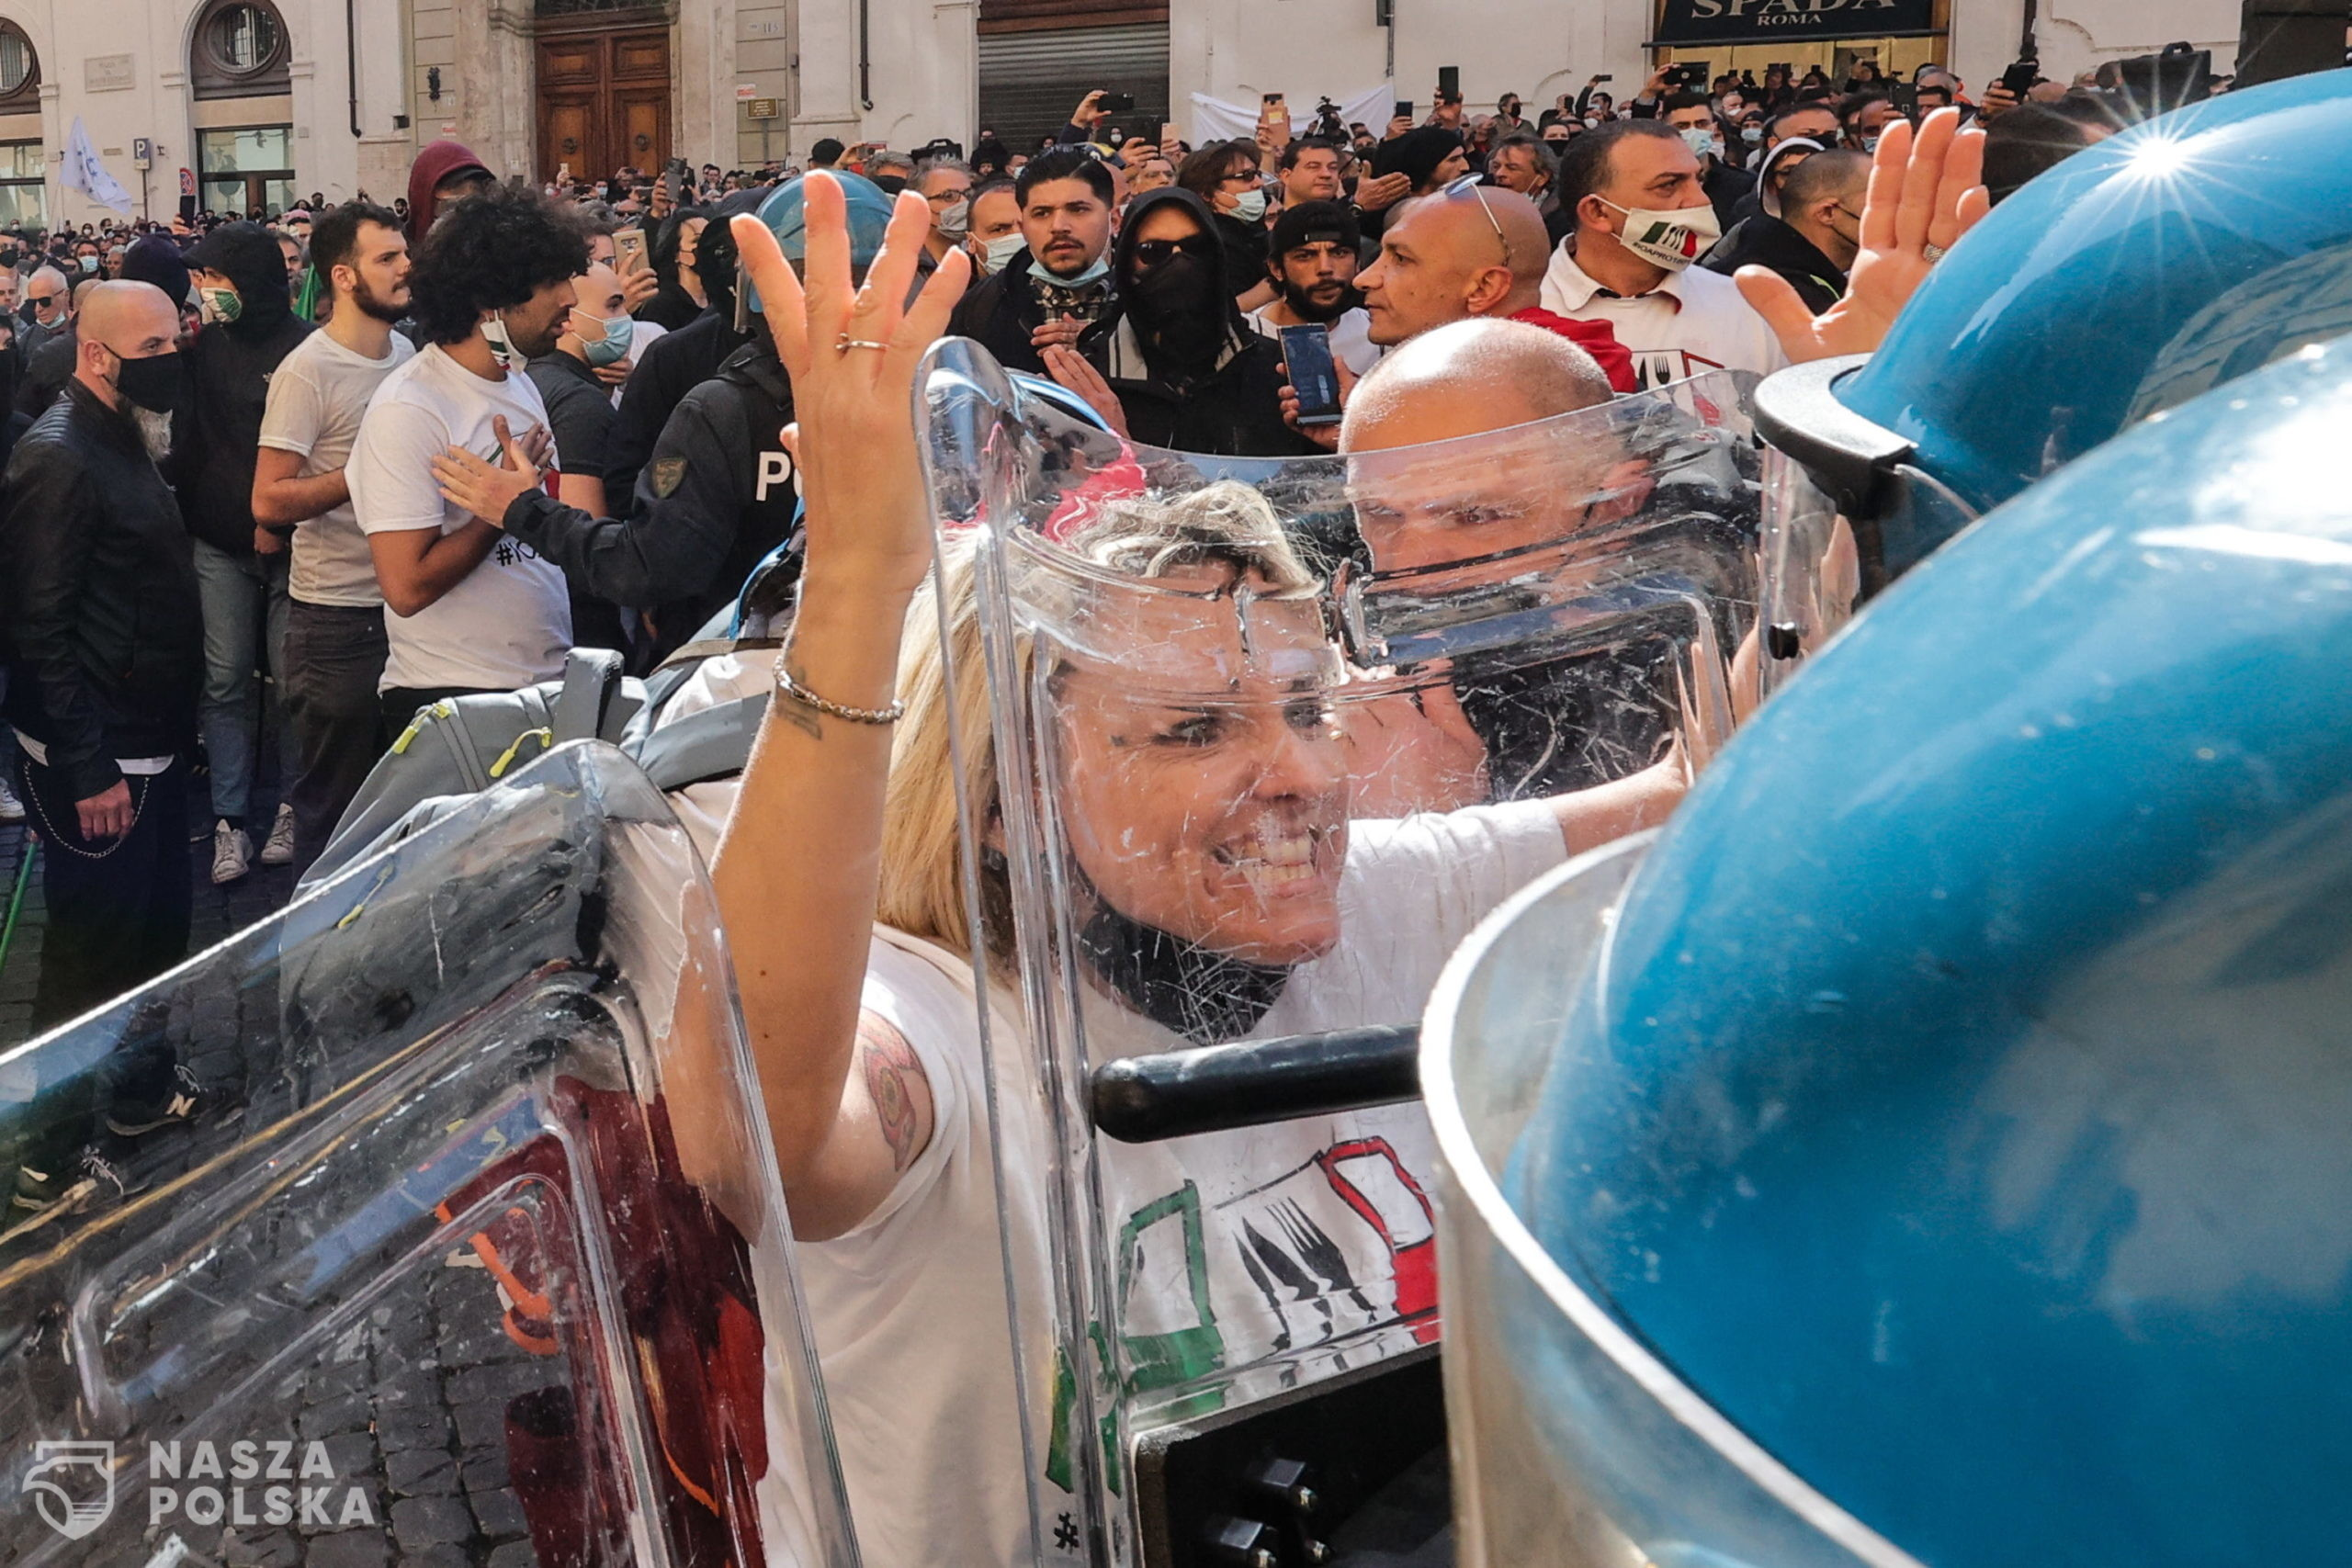 epa09118675 Traders, shopkeepers and restaurateurs clash with police during a protest next to the Chamber of Deputies in Piazza Montecitorio, Rome, Italy, 06 April 2021. The protesters, many with lowered masks, demand the reopening of their shops and restaurants amid the third COVID-19 pandemic lockdown measures.  EPA/GIUSEPPE LAMI  Dostawca: PAP/EPA.